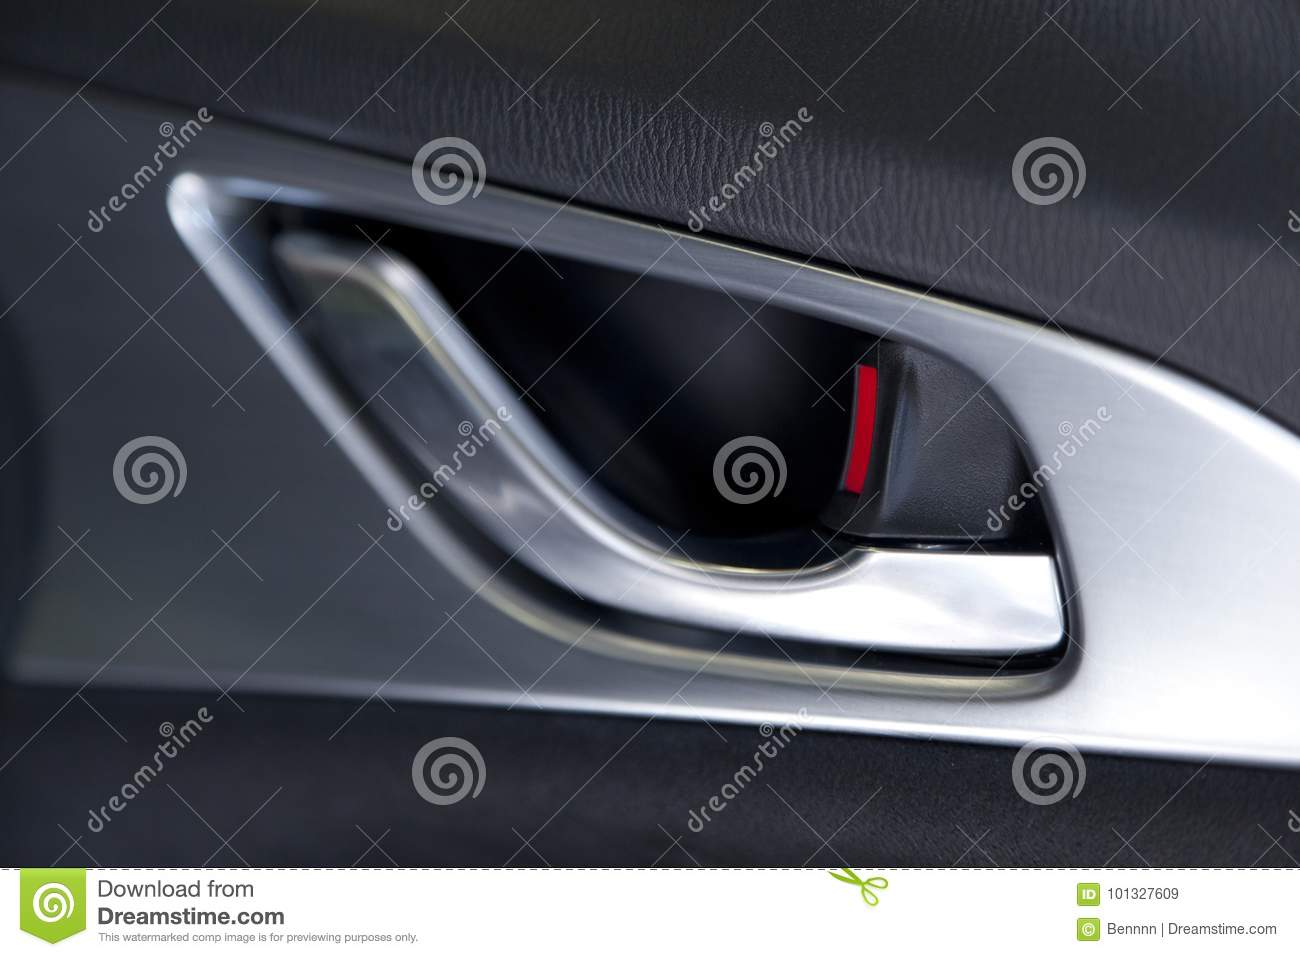 car door handle stock image image of mirror unlocking 101327609. Black Bedroom Furniture Sets. Home Design Ideas